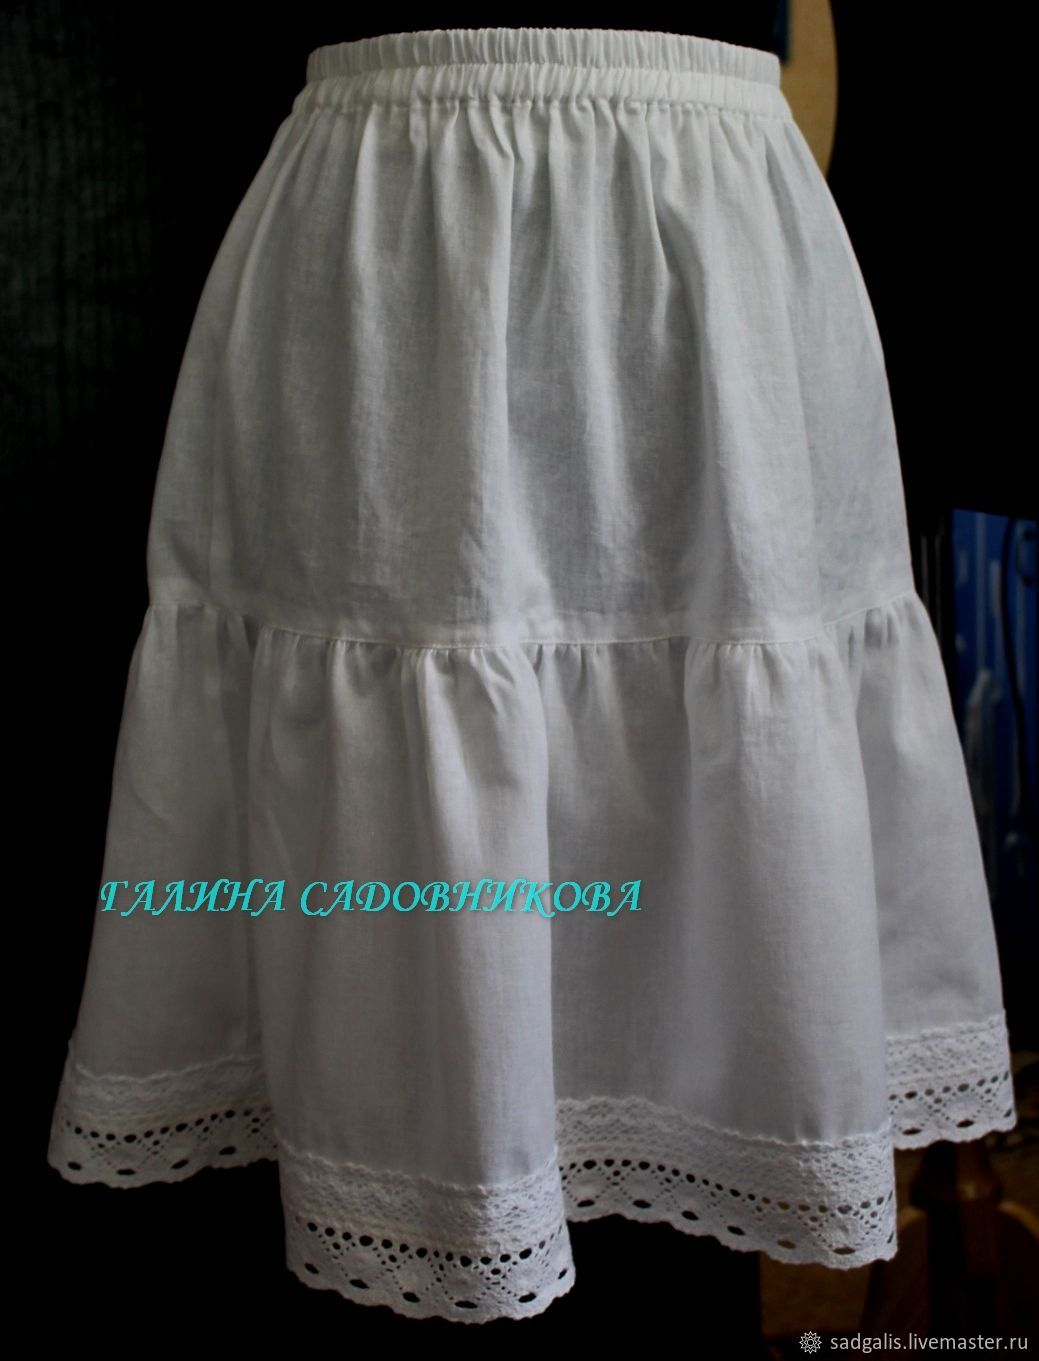 The underskirt is made of cotton, Skirts, Borskoye,  Фото №1